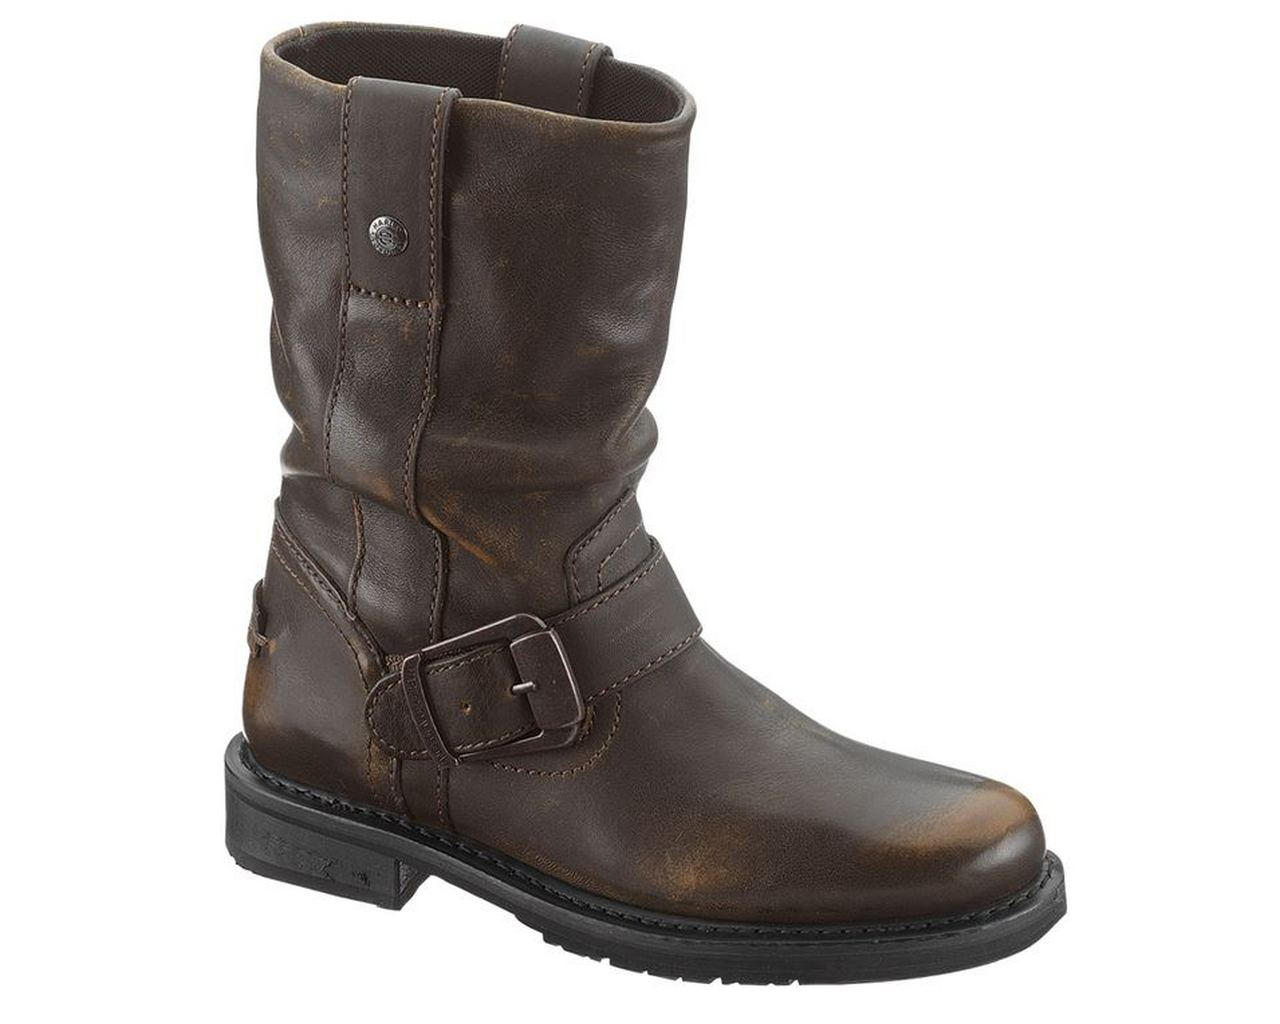 New Women?s Xelement Brown Lace Up Motorcycle Boots